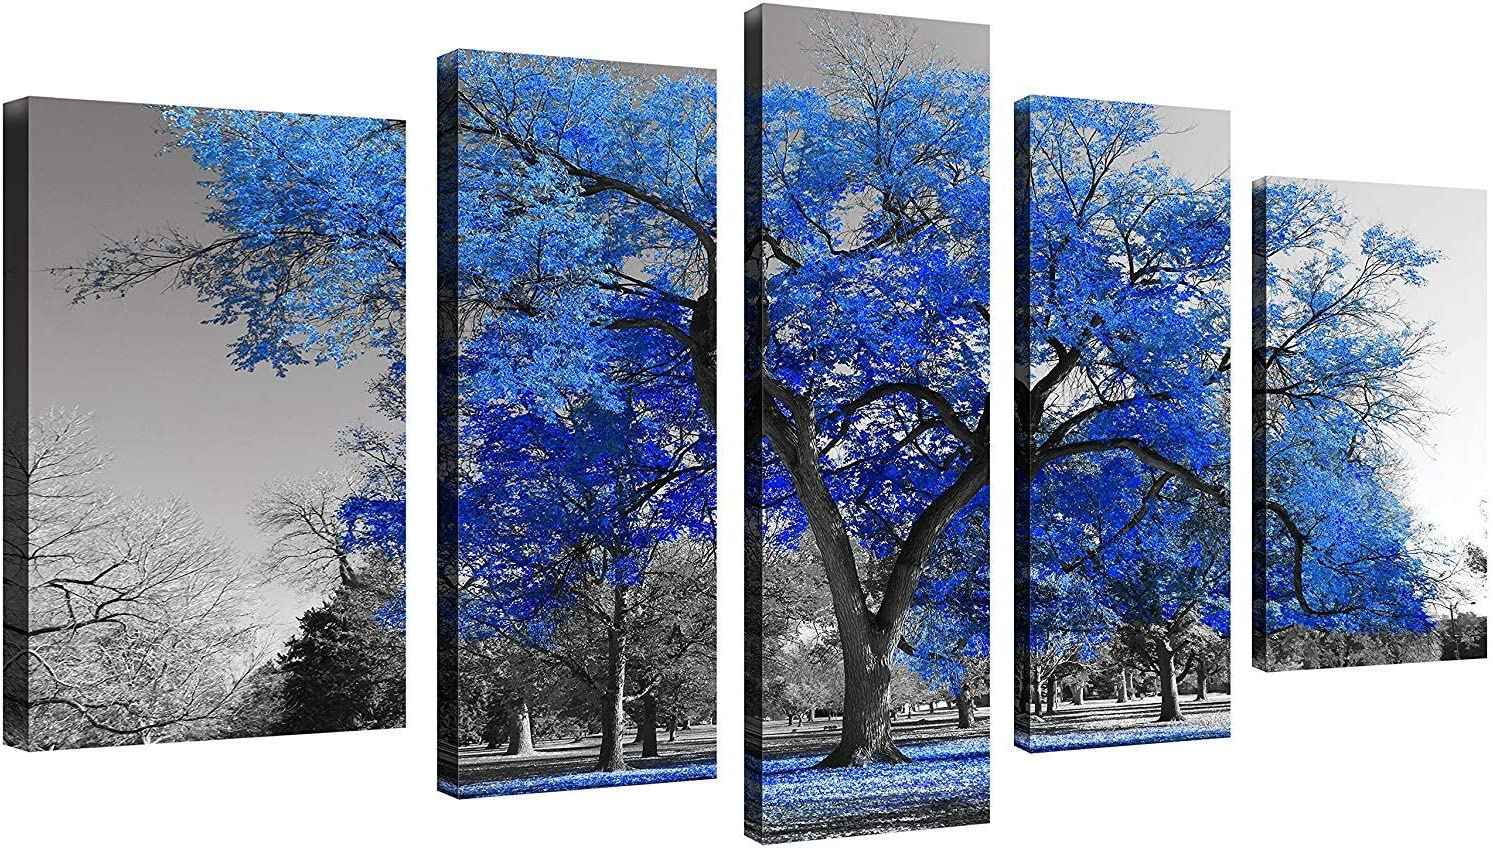 QICAI 5 Panels Canvas Print Wall Art Painting Contemporary Blue Tree in Black and White Style Fall Landscape Picture Modern Giclee Stretched and Framed Artwork Ready to Hang, 5 pcs/Set